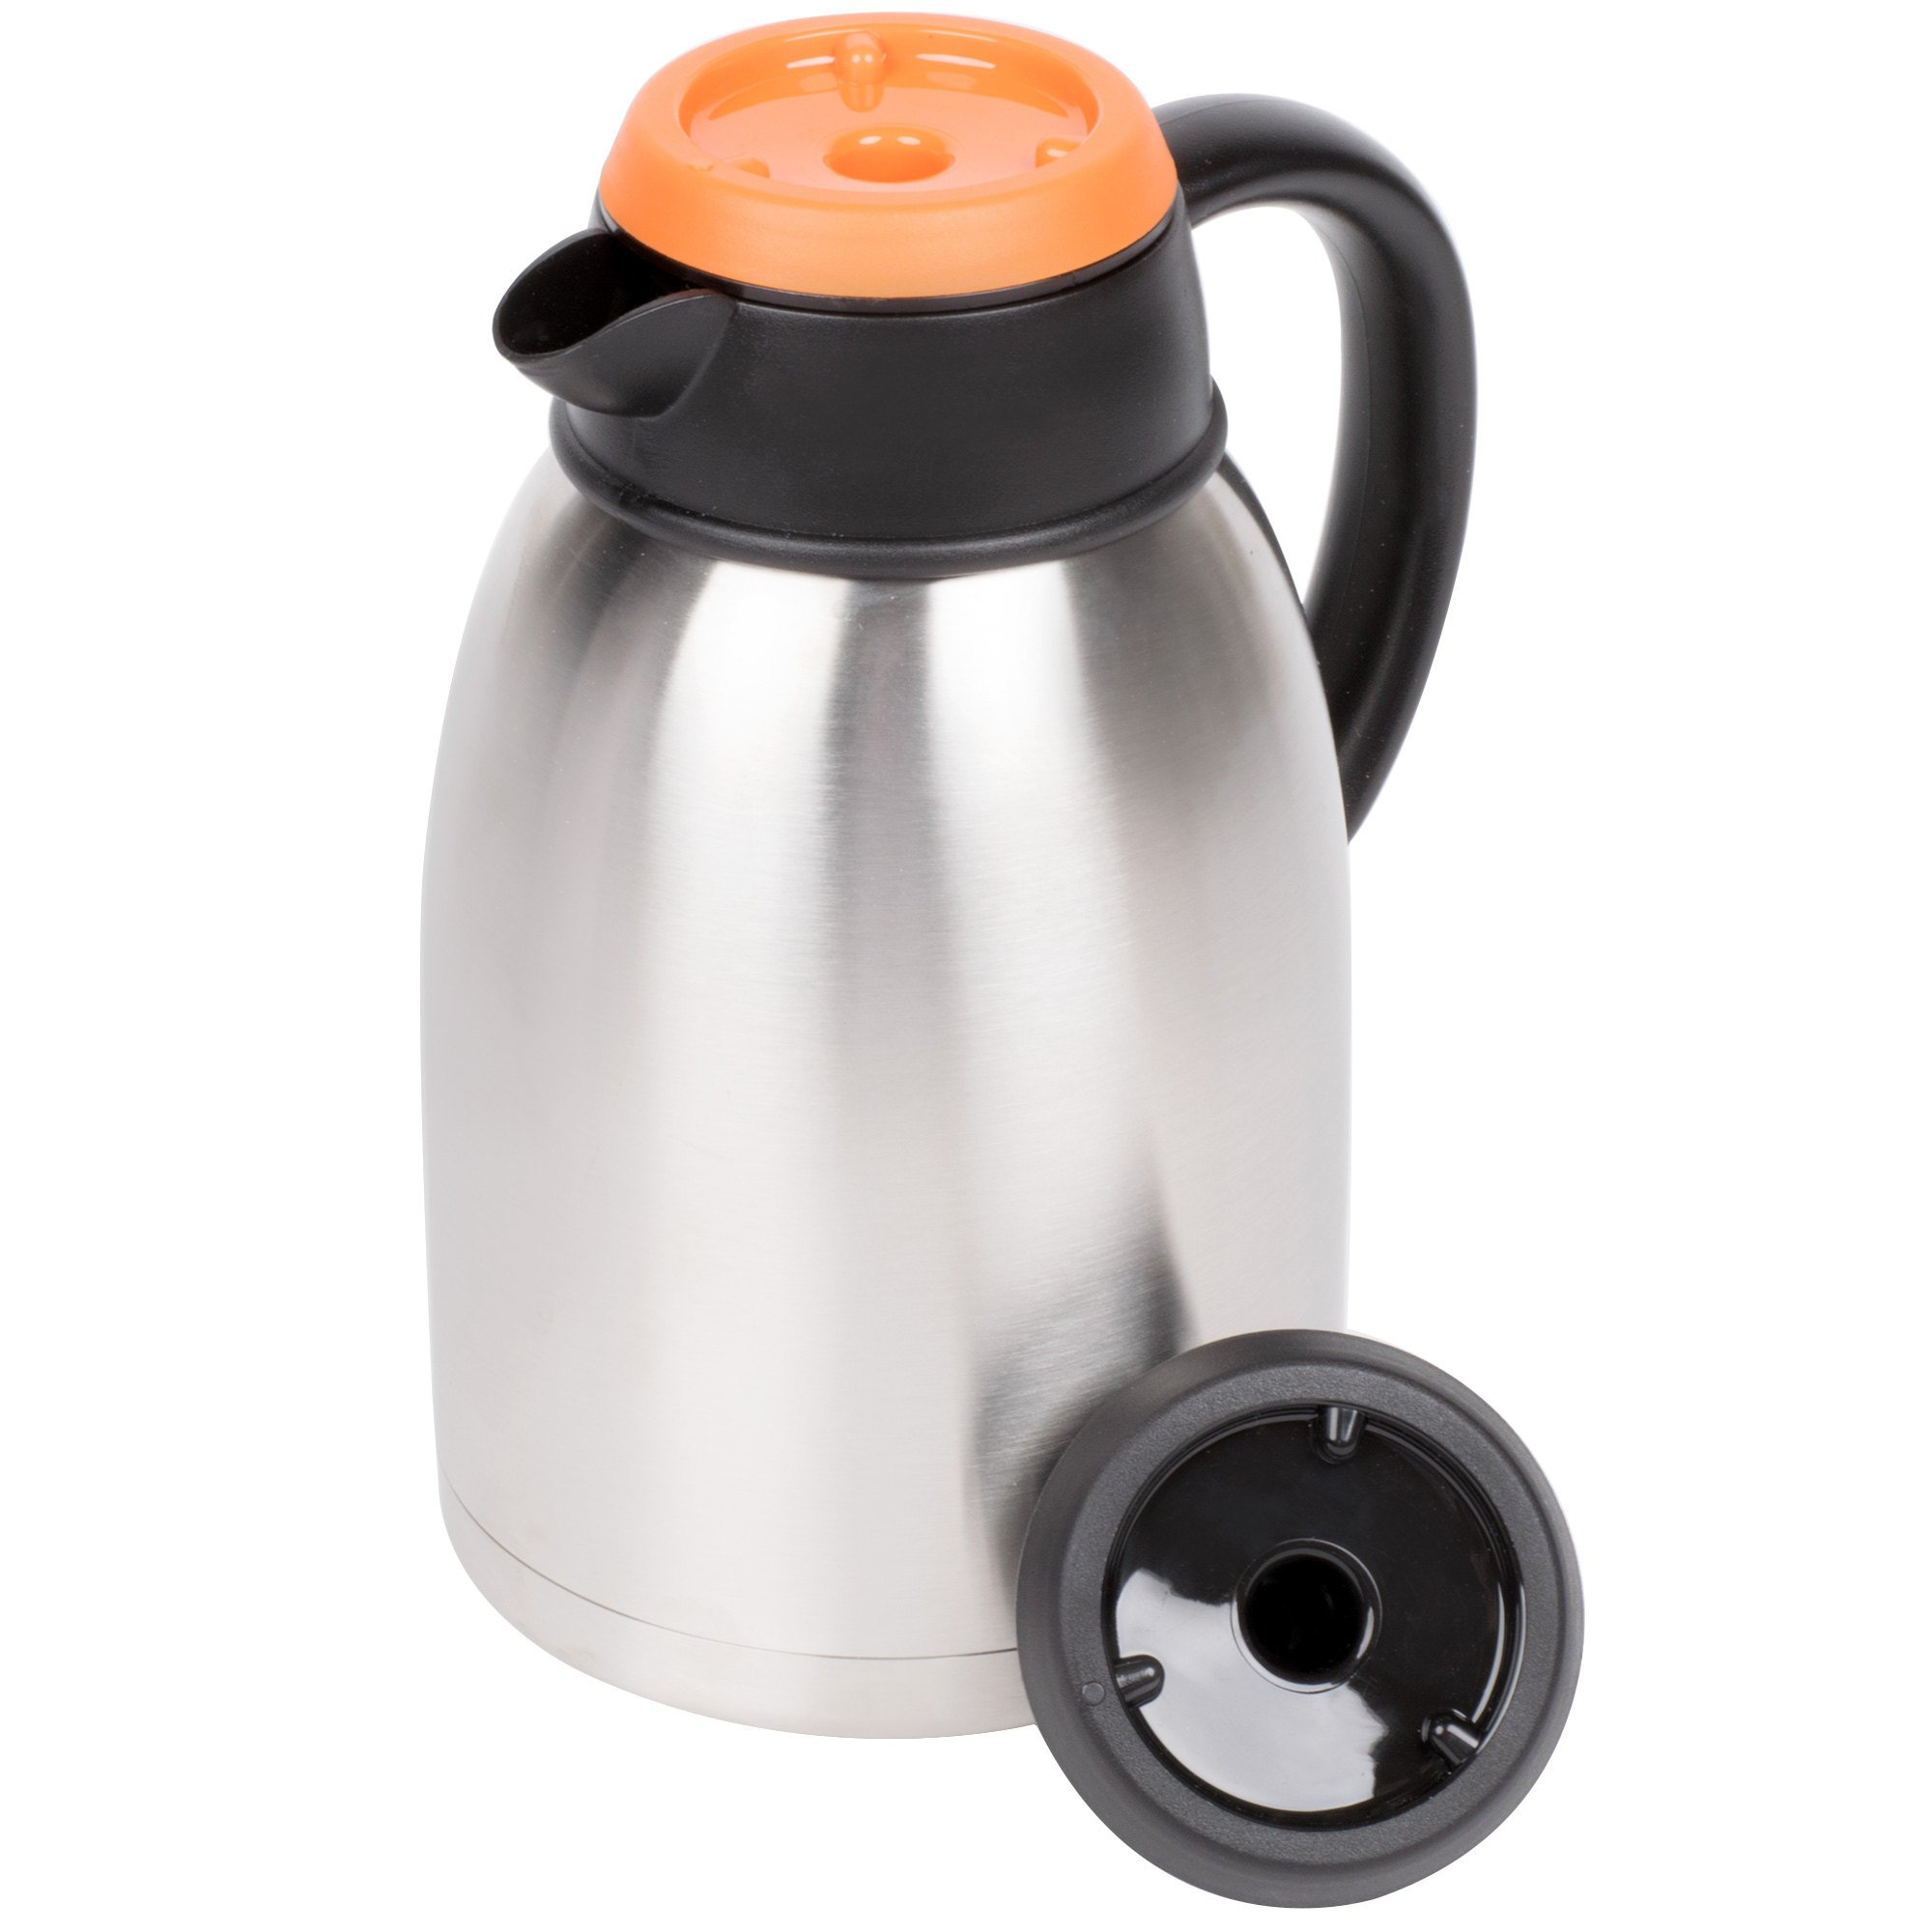 1.9 Liter Insulated Thermal Coffee Server with Regular and Decaf Lids - 9 1/2'' x 5 1/2''